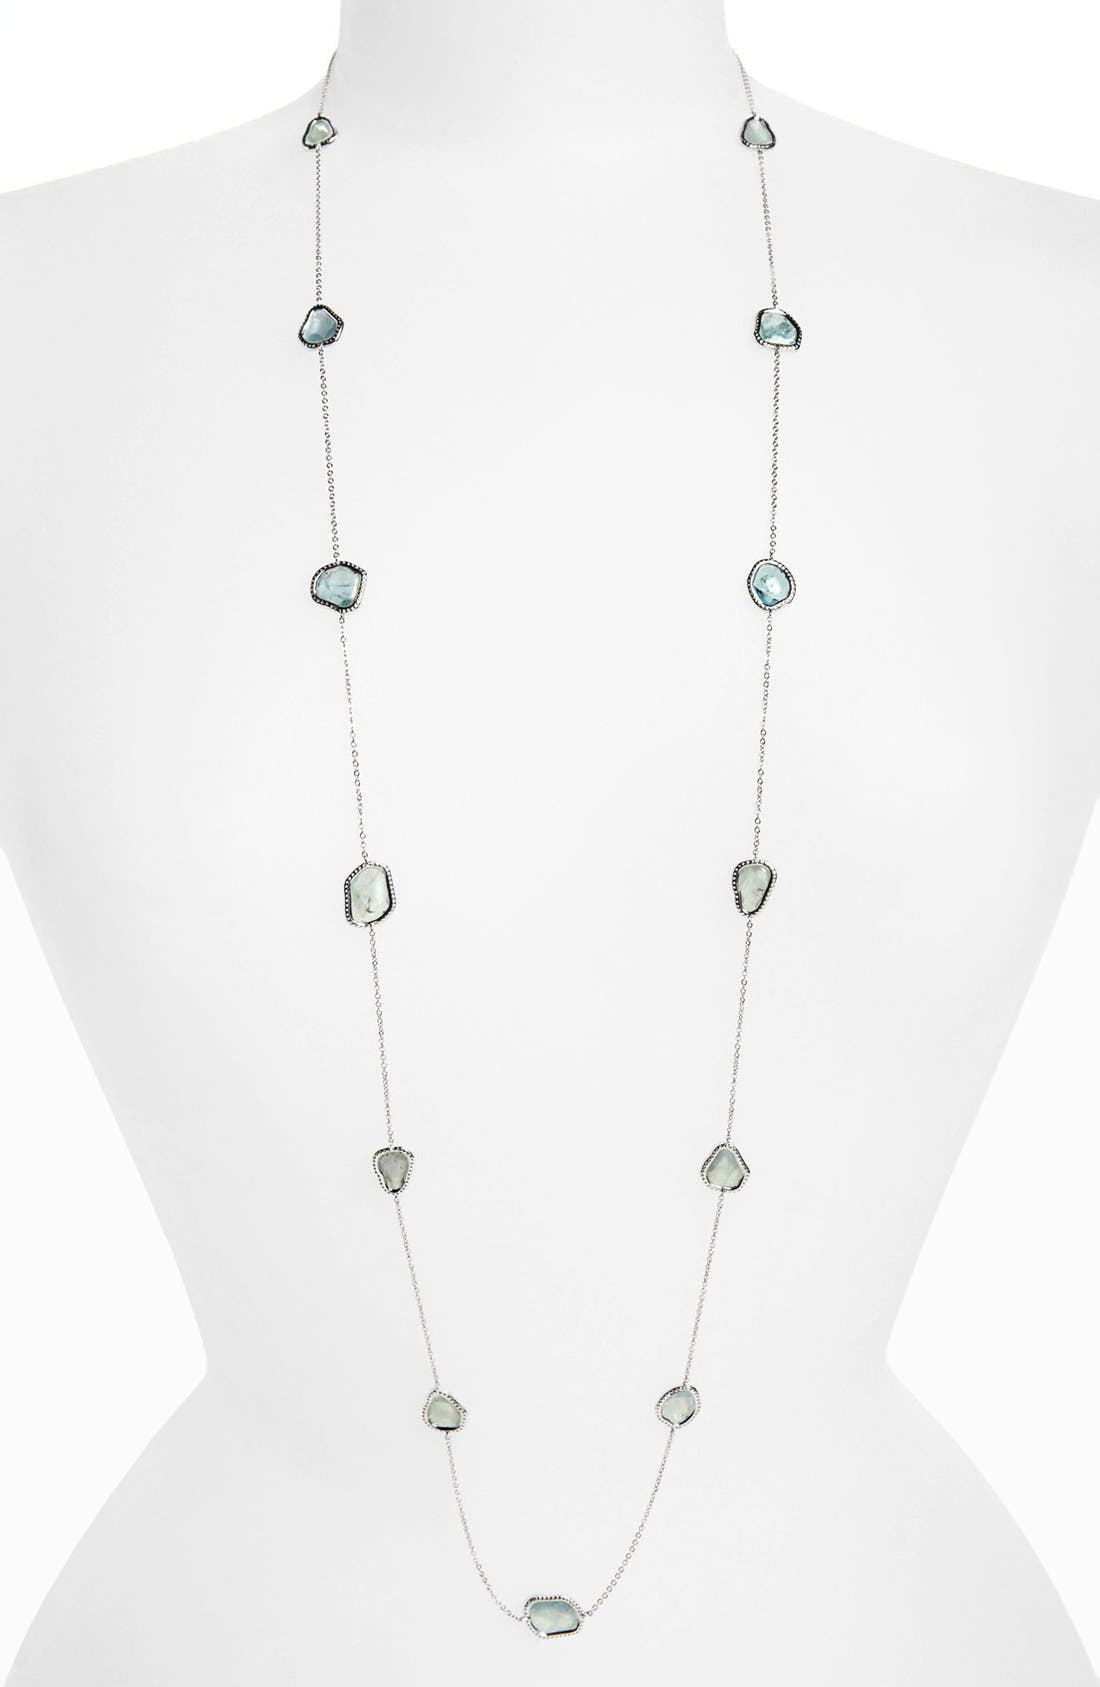 Main Image - Nadri Long Station Necklace (Nordstrom Exclusive)